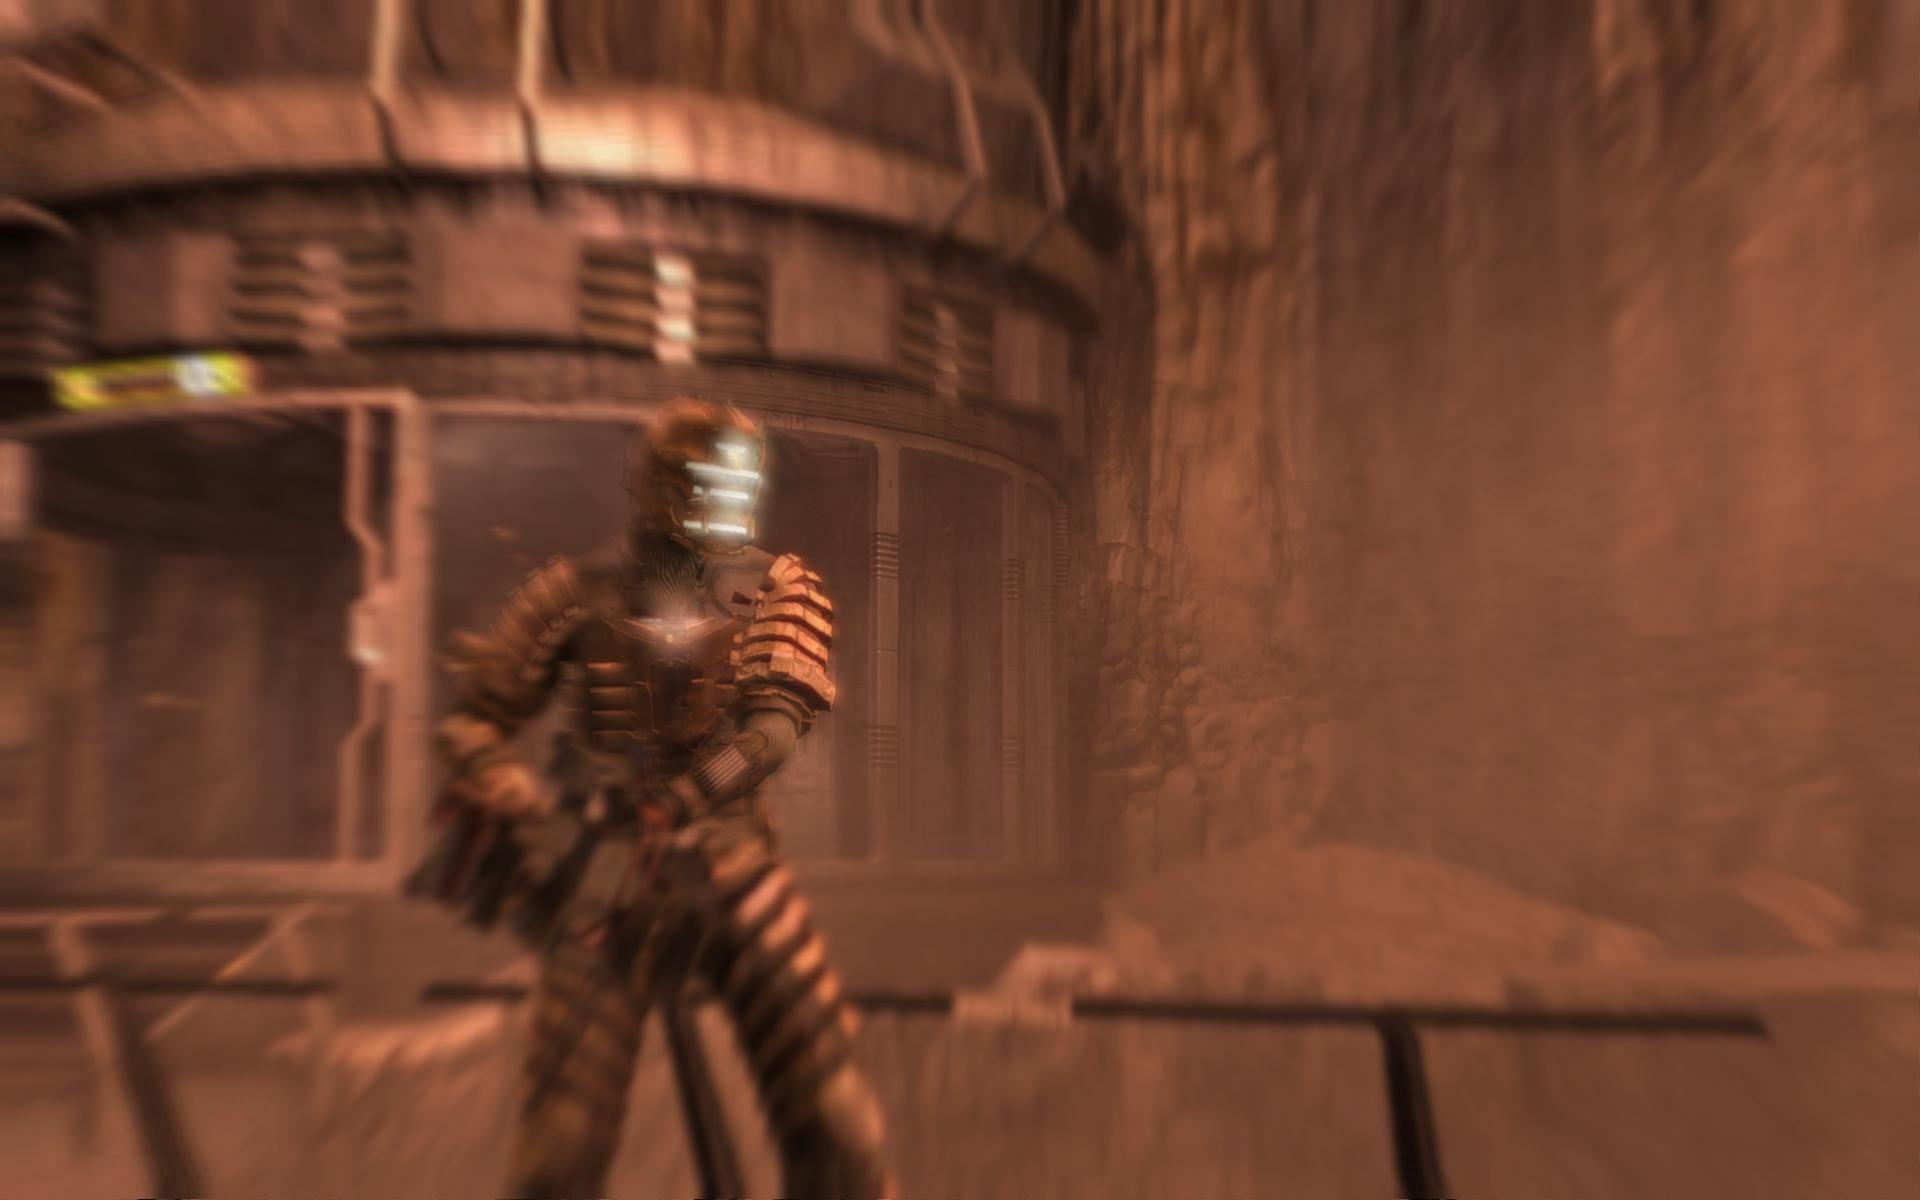 dead-space-2011-01-30-17-35-45-12